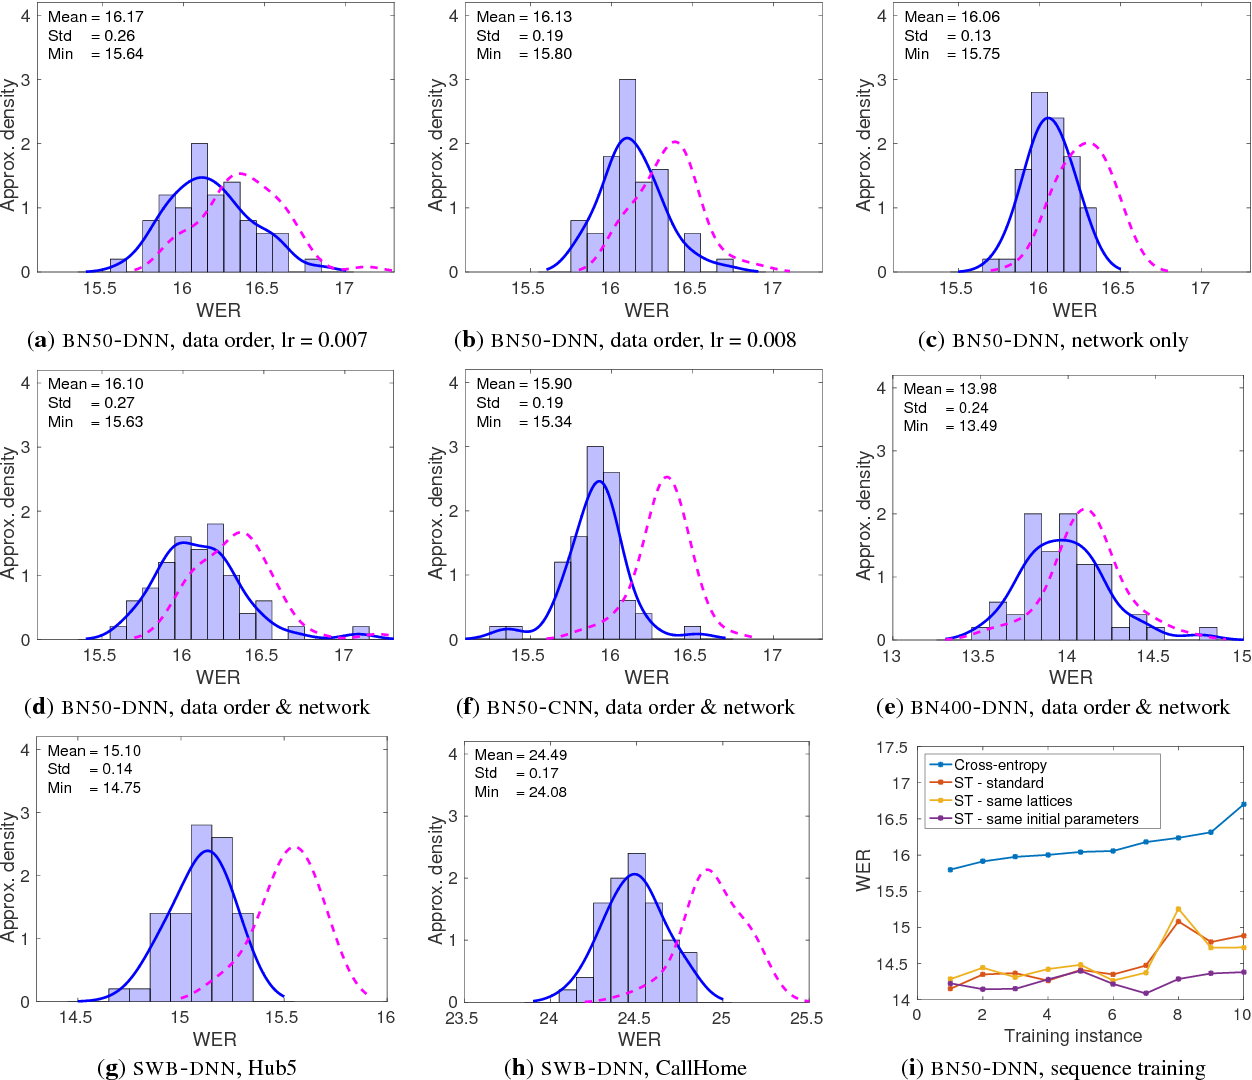 Figure 3 for Training variance and performance evaluation of neural networks in speech